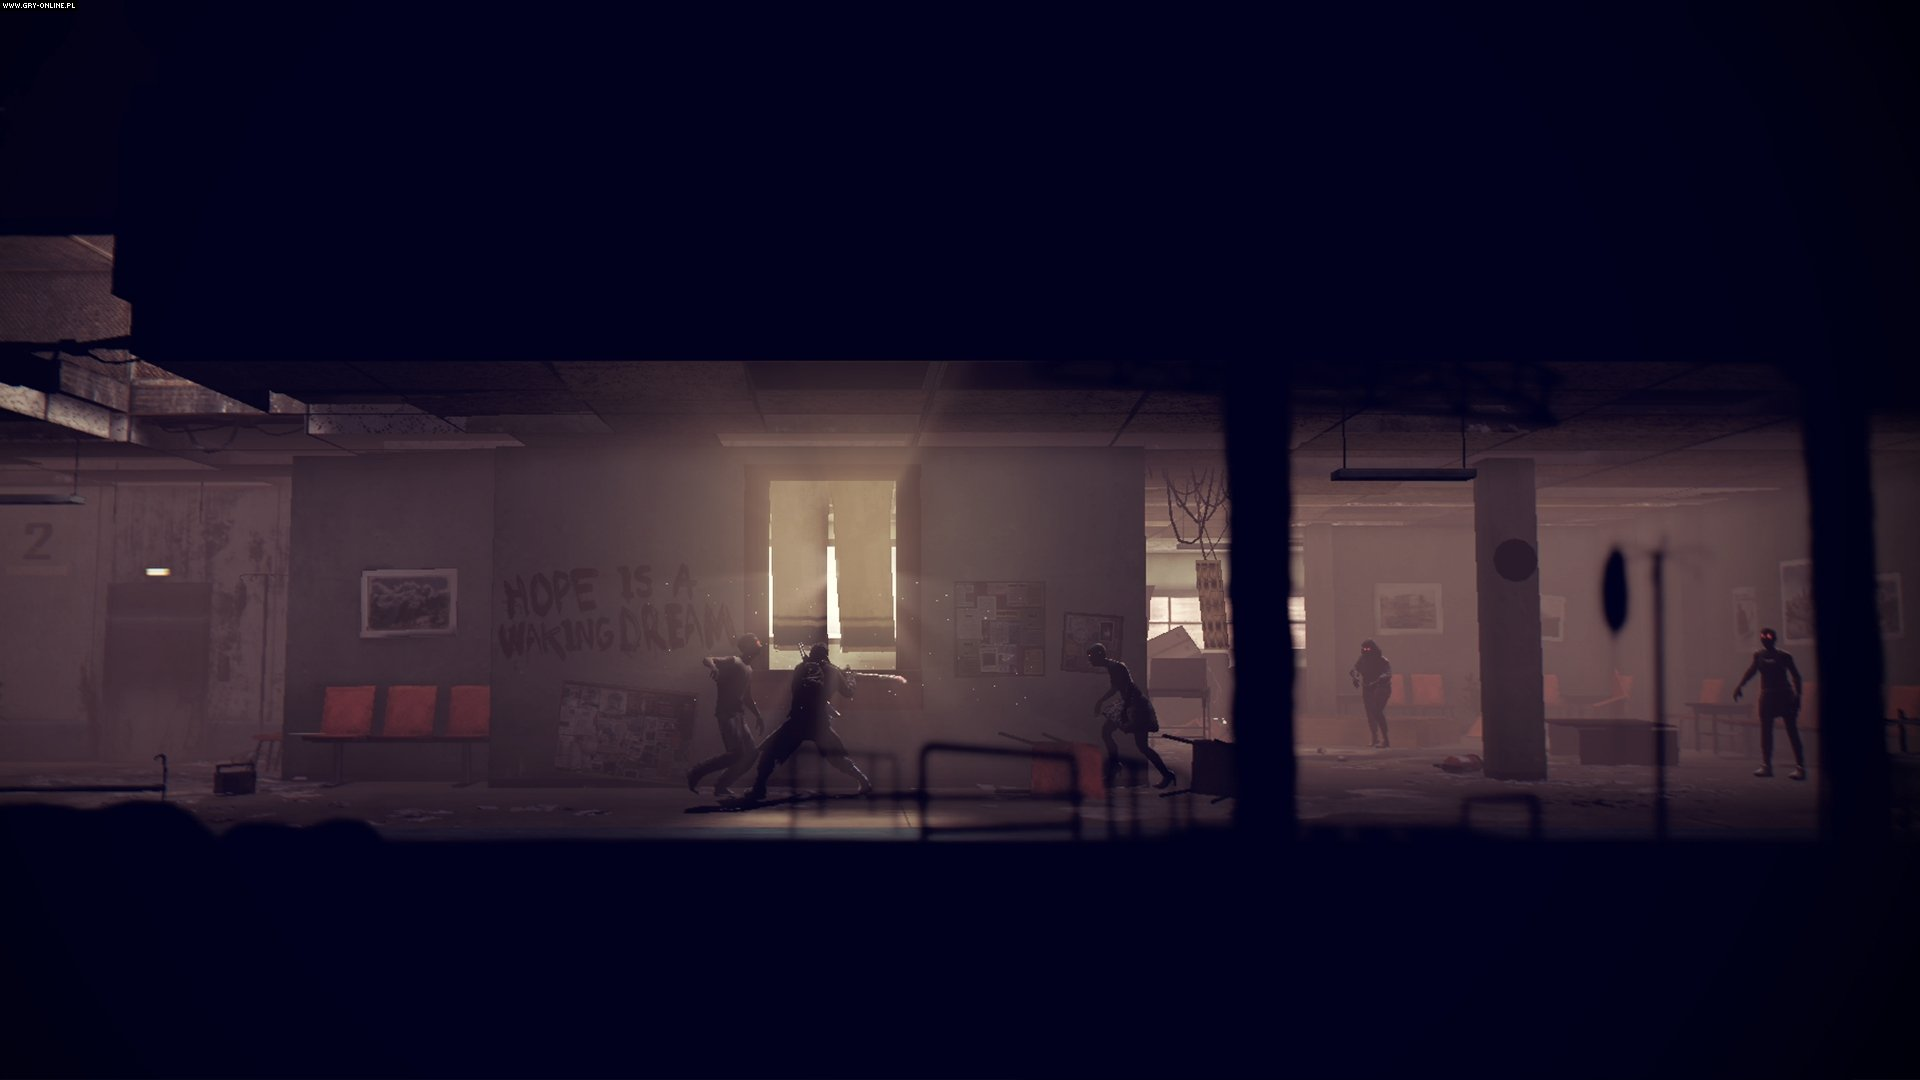 Deadlight: Director's Cut PC, PS4, XONE Gry Screen 7/11, Tequila Works, Deep Silver / Koch Media